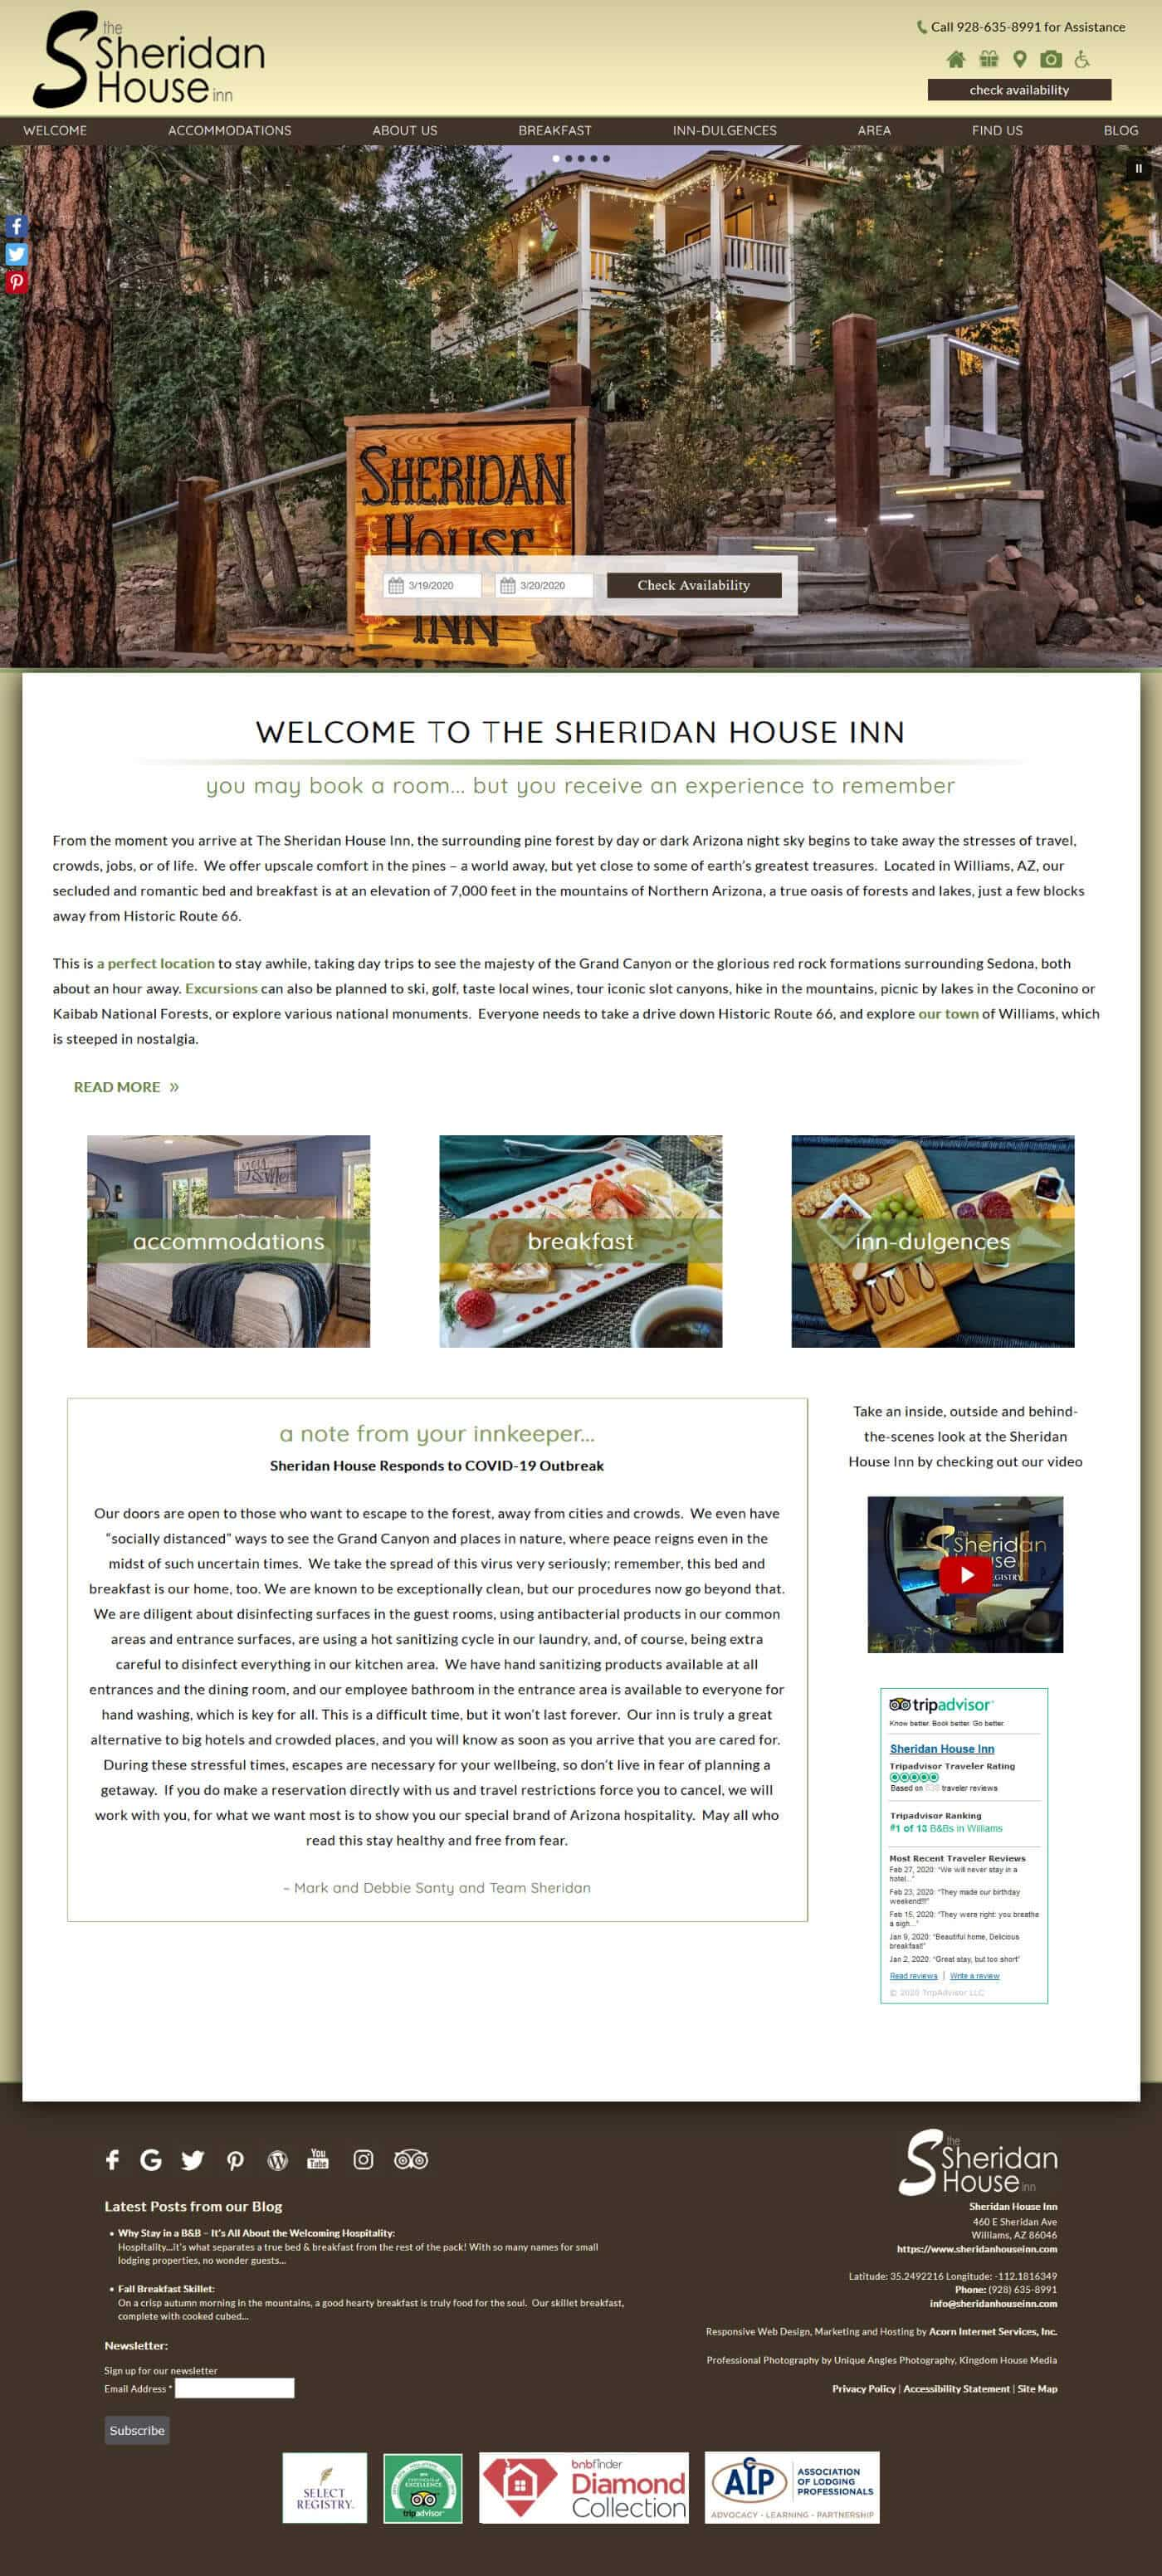 Screenshot of the home page of Sheridan House Inn